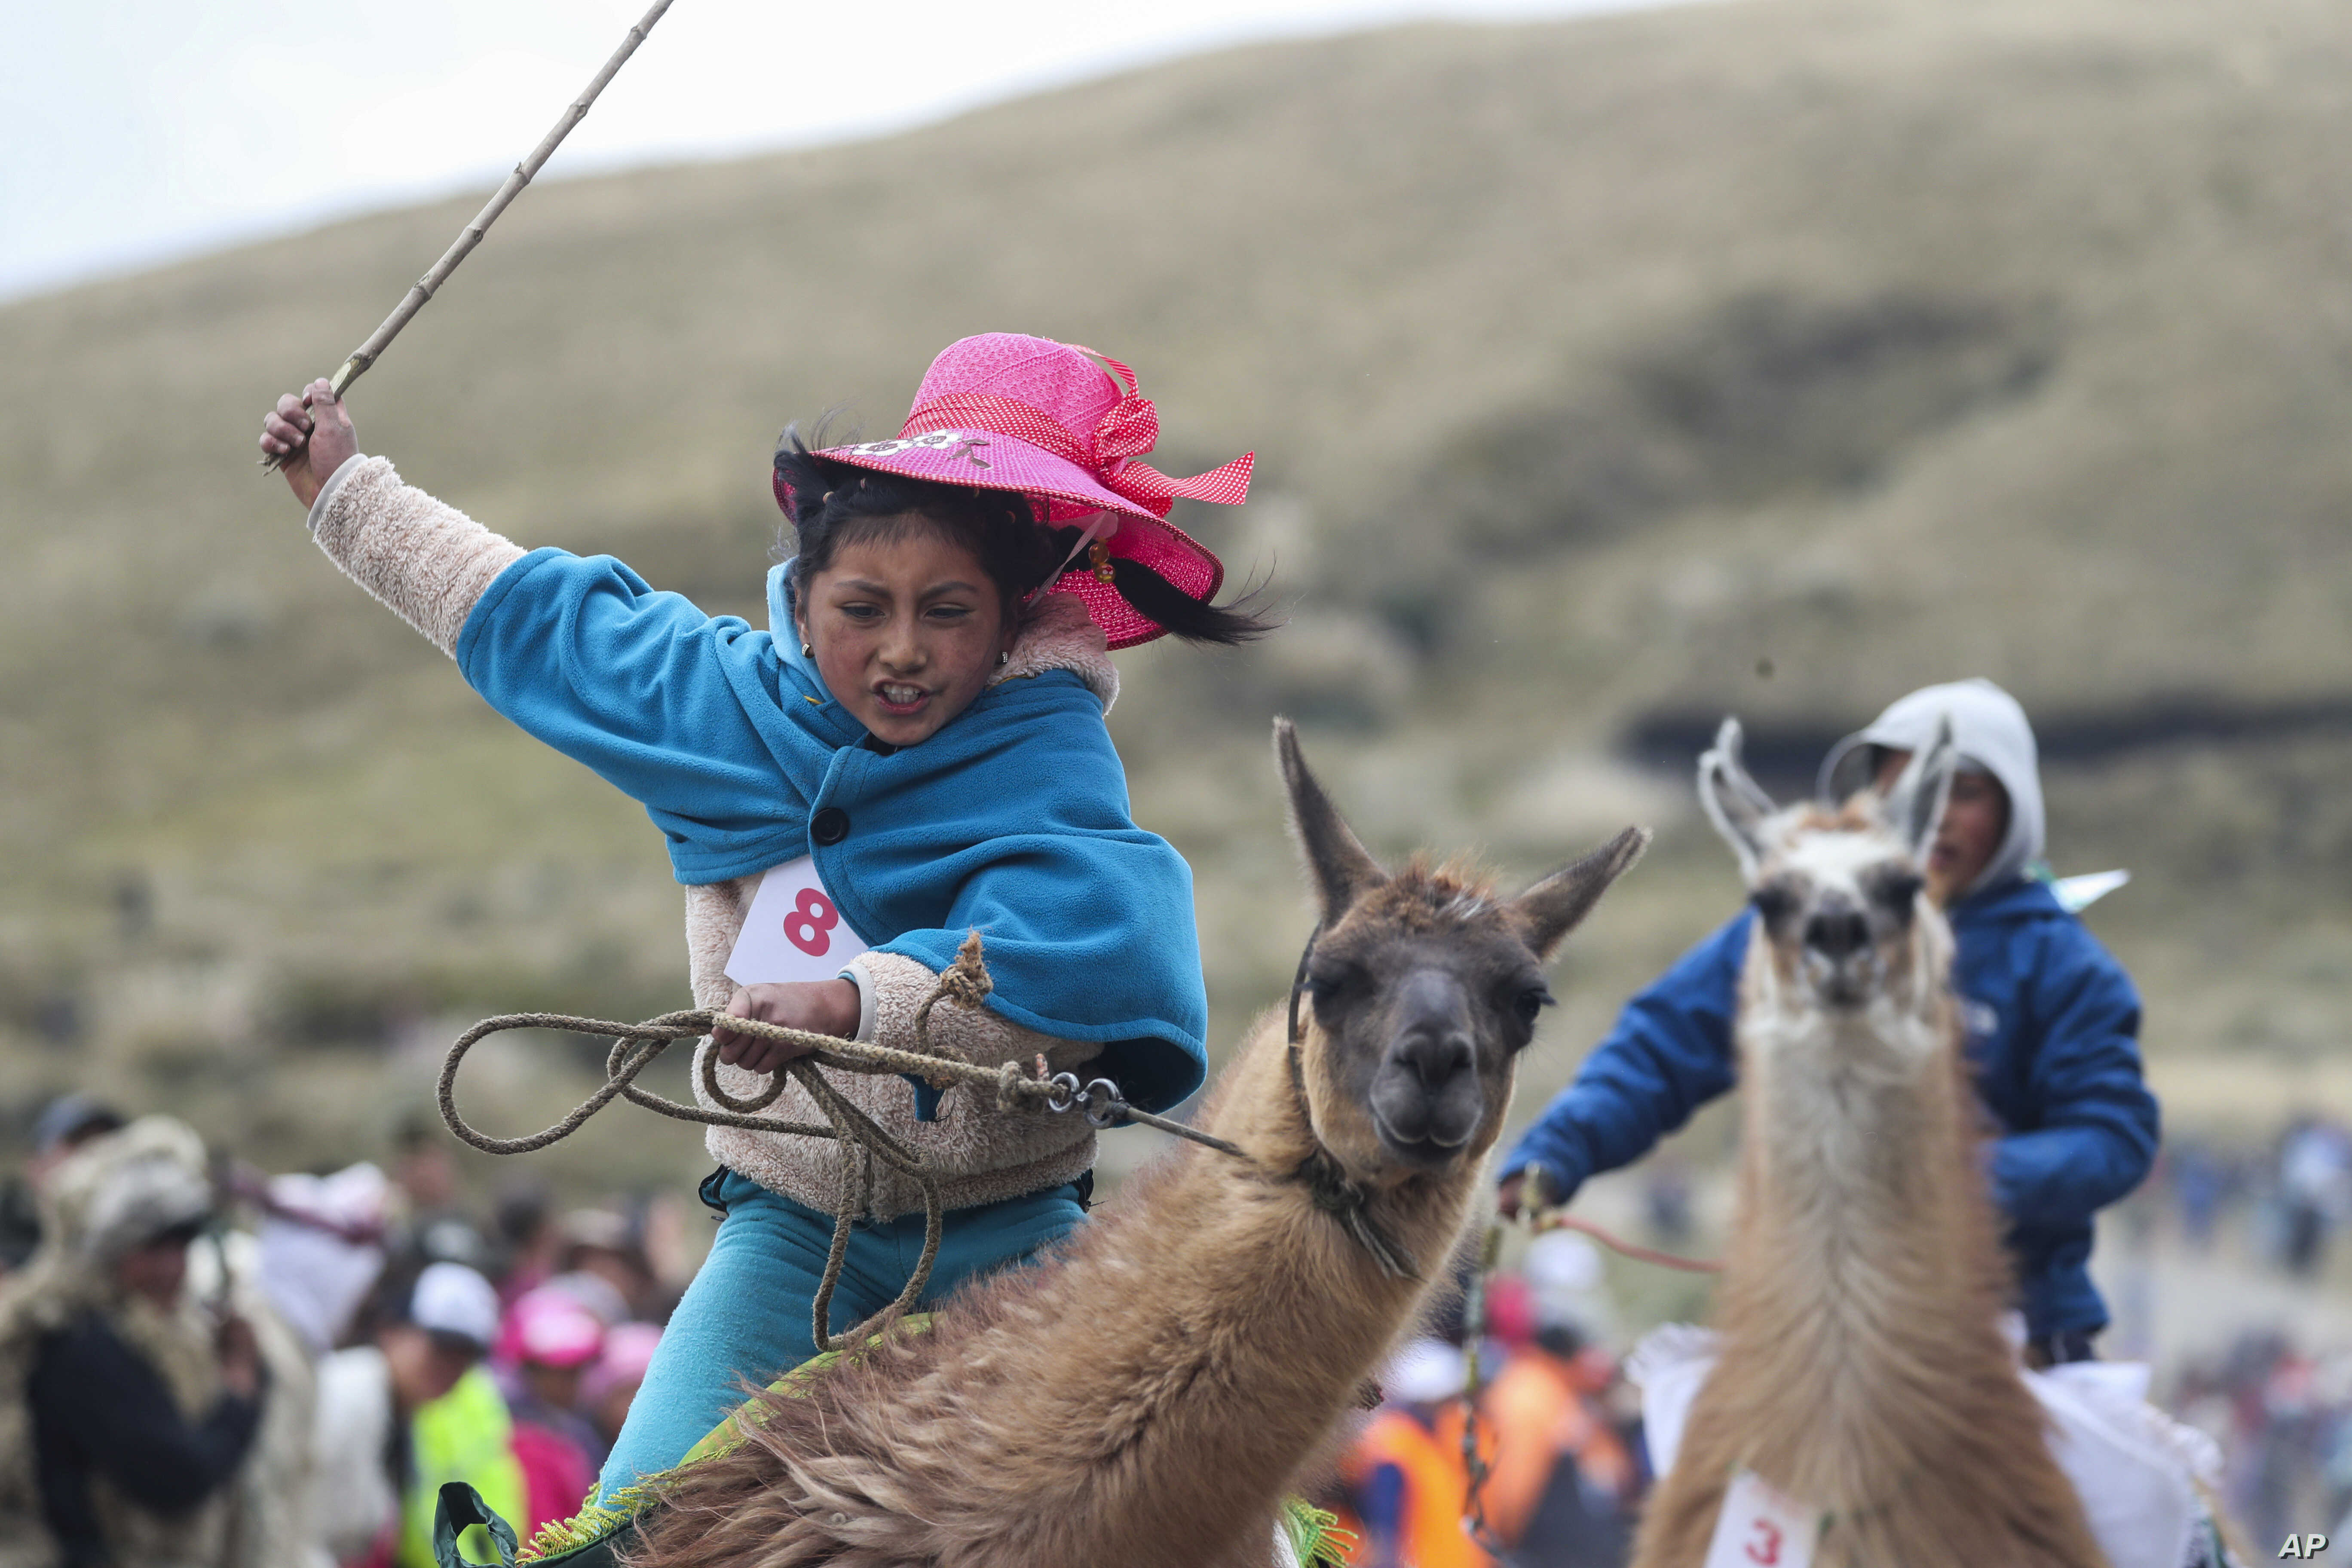 Milena Jami whips her llama to win the first place in the a race for children of ages seven and eight at the Llanganates National Park, Ecuador, Feb. 8, 2020.